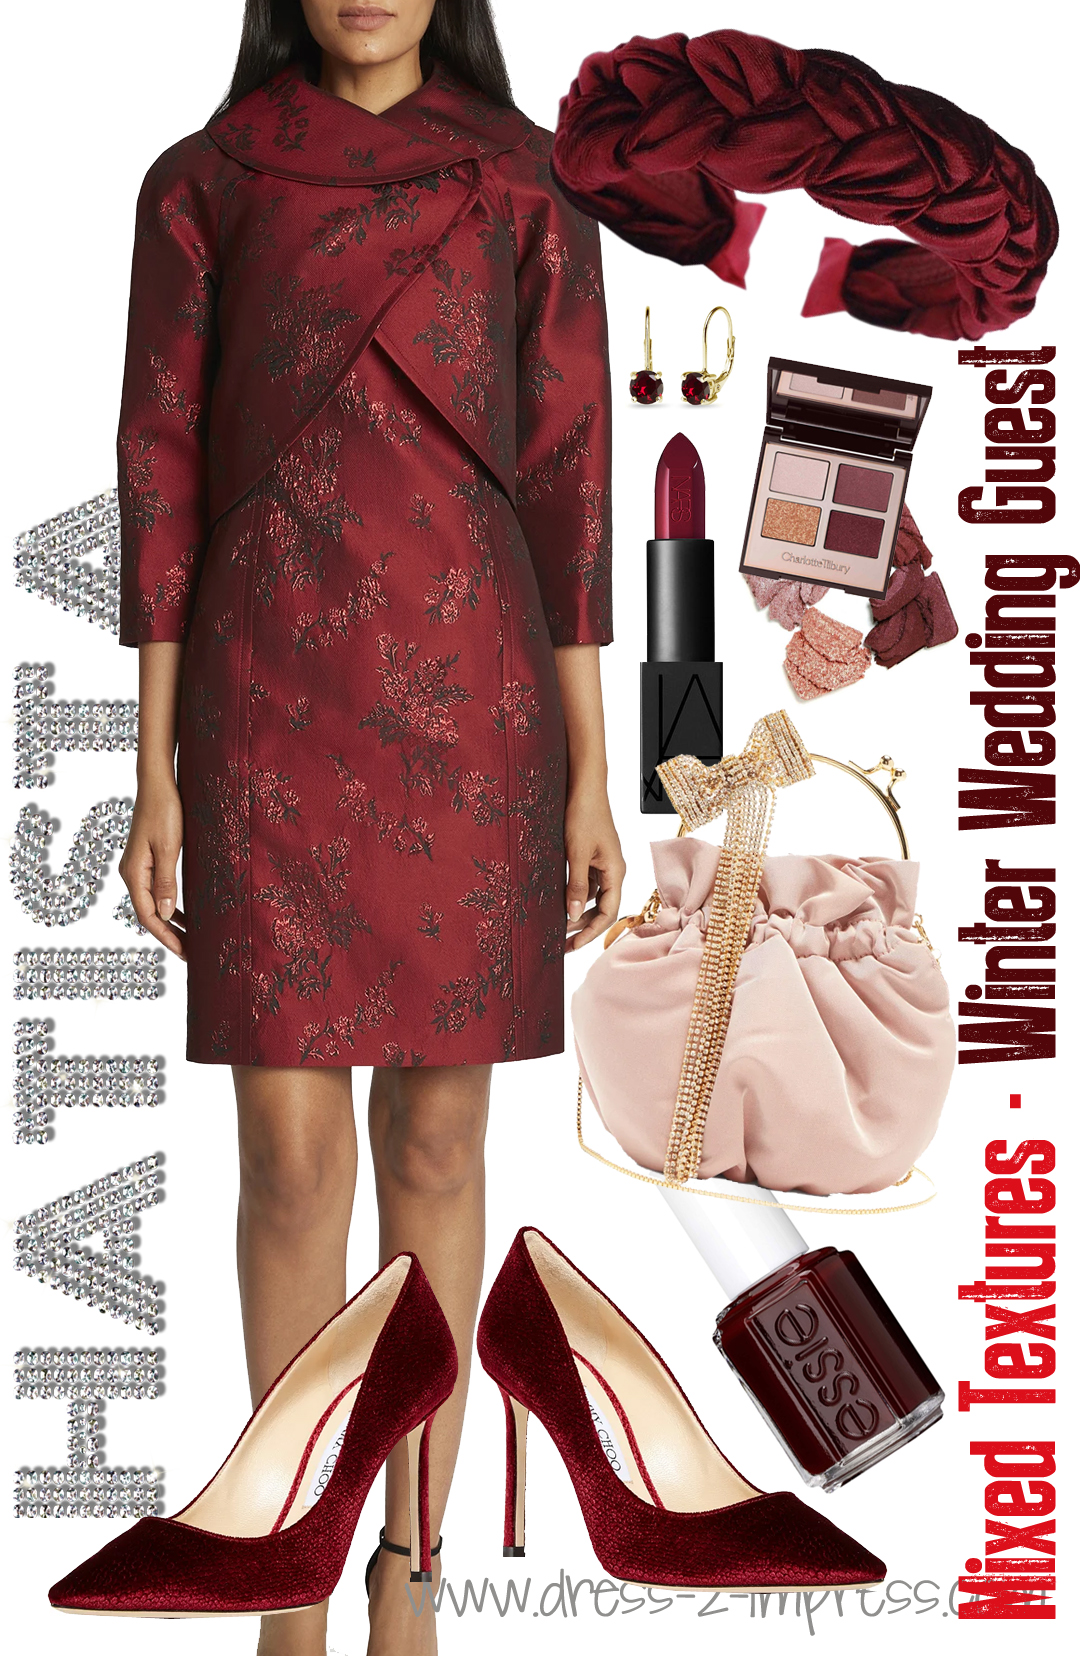 How to dress for a Winter Wedding 2021. Burgundy outfit ideas 2021. Outfits with Burgundy 2021. Winter Wedding Outfit inspiration 2021. What to wear to a Winter Wedding 2021. Winter Wedding Guests outfits 2021. How to dress for a Christmas wedding 2021. How to wear Burgundy Red 2021. What to wear to a February wedding 2021. What to wear to late winter wedding 2021.